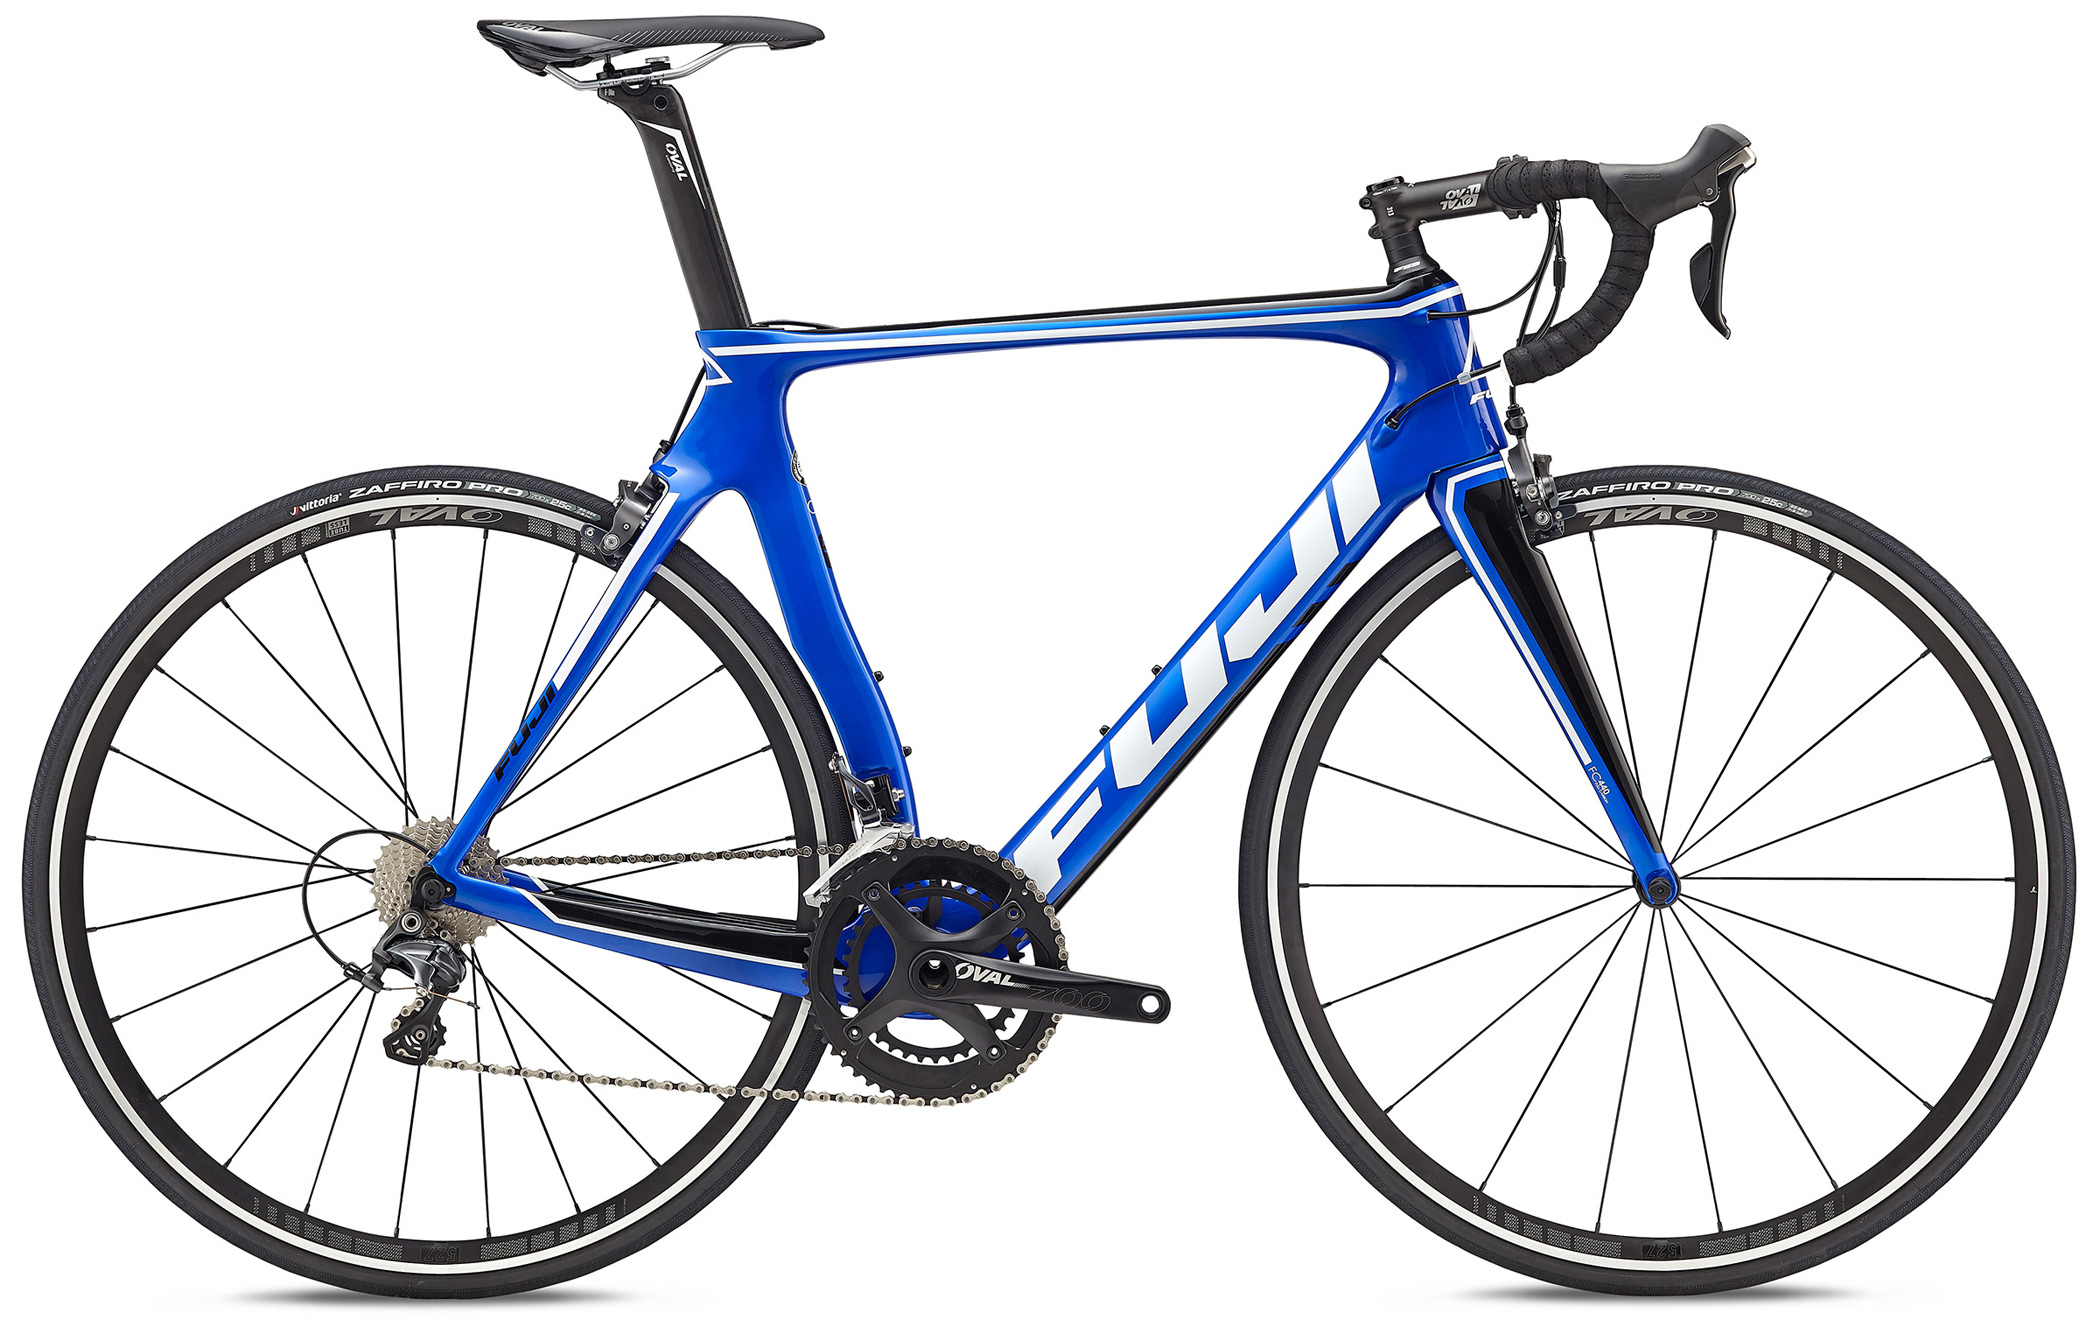 Bikes Fuji Transonic 2.3 Full Carbon AERO Road Bikes with Shimano Ultegra R8000 22 Speeds Image